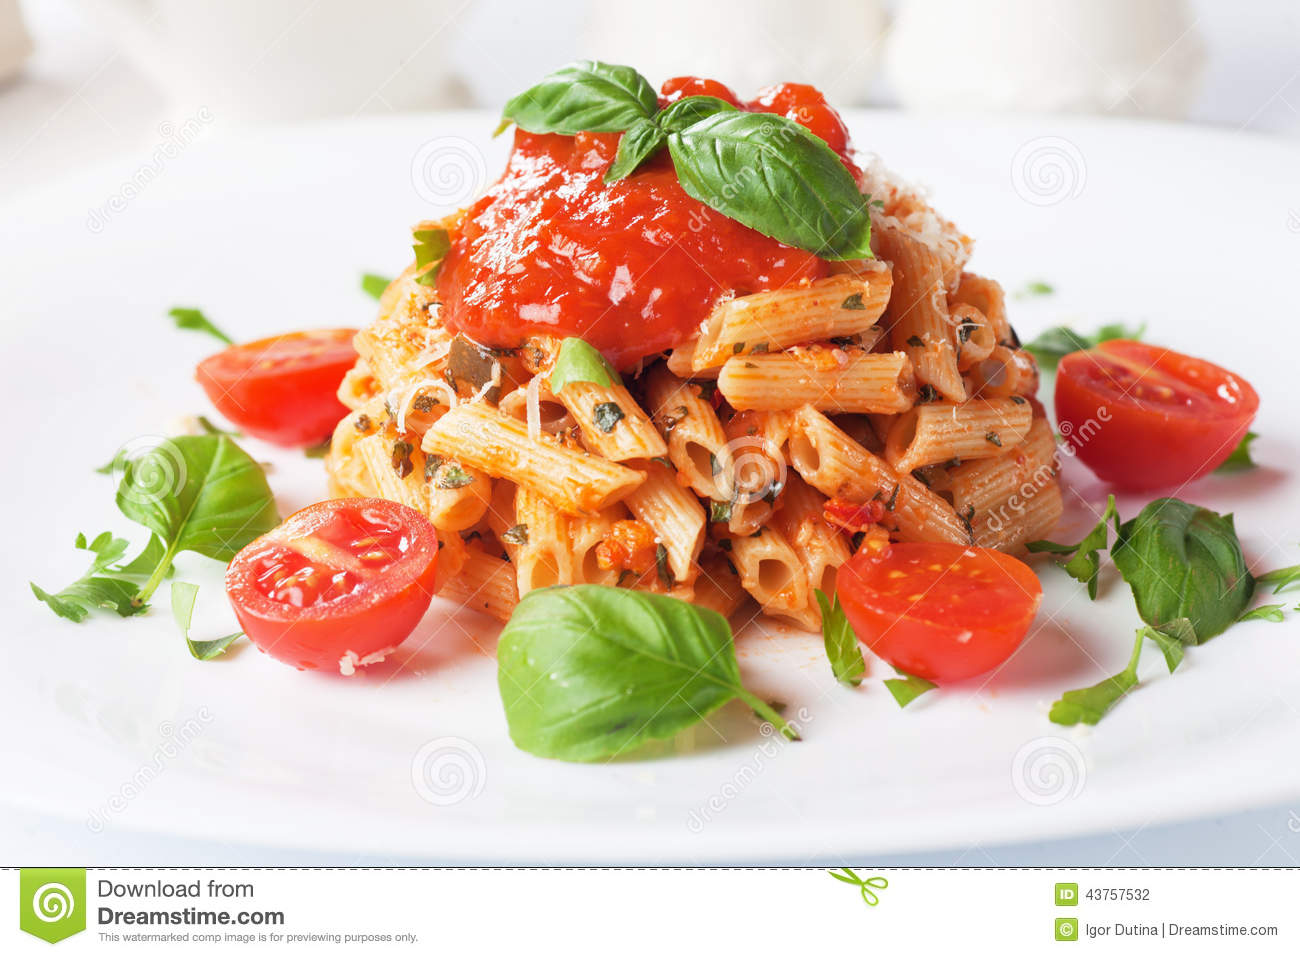 ... rigate pasta with tomato sauce, grated parmesan cheese and basil